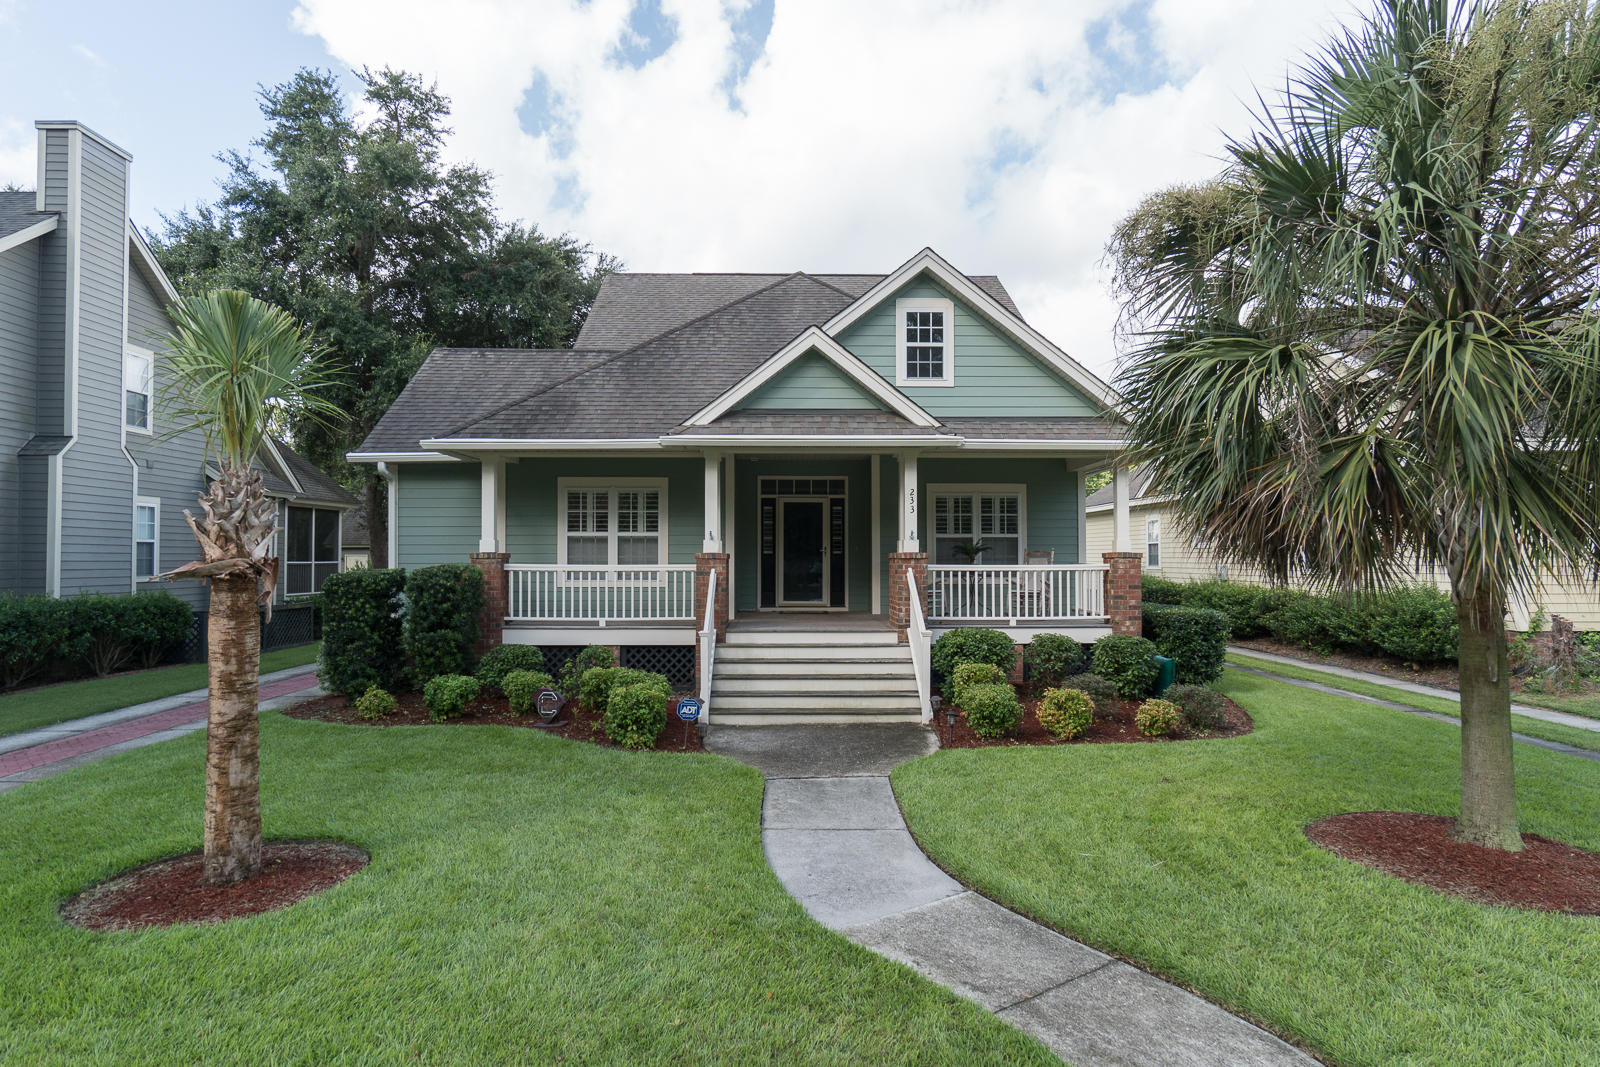 Ainsdale at Shadowmoss Plantation Homes For Sale - 233 Ainsdale, Charleston, SC - 1